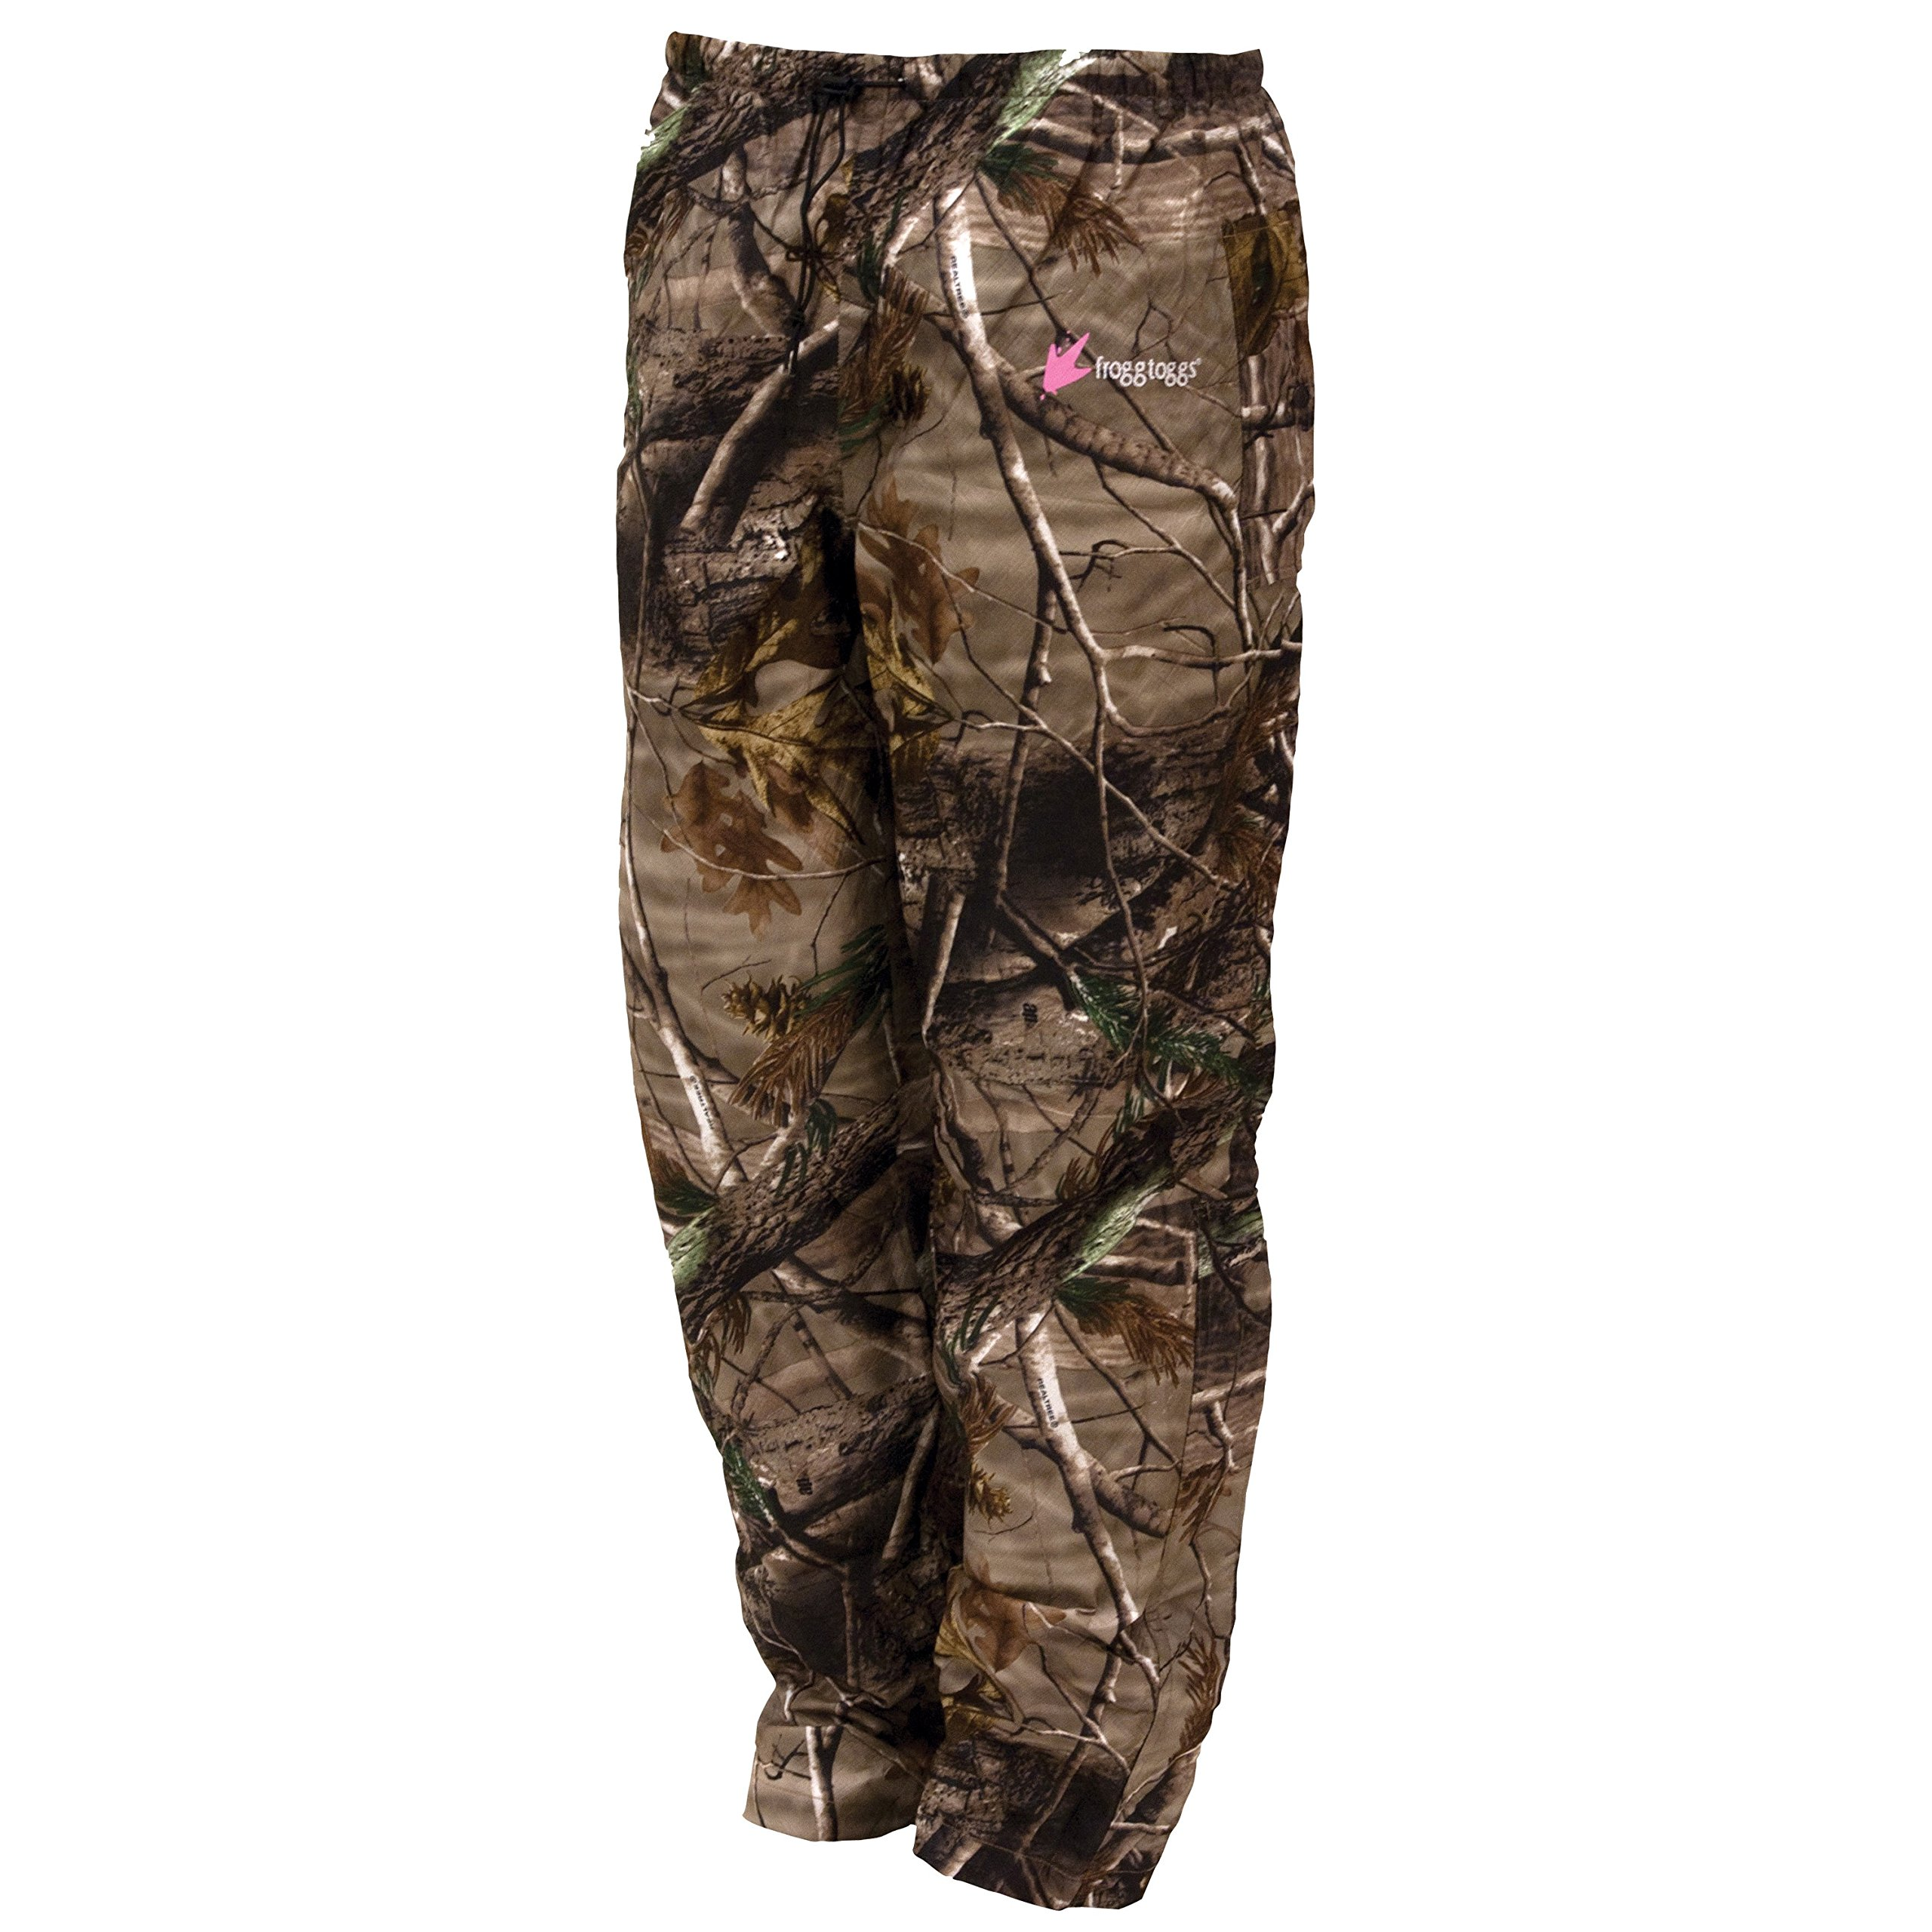 Frogg Toggs Pro Action Pant, Women's, Realtree Xtra, Size X-Large